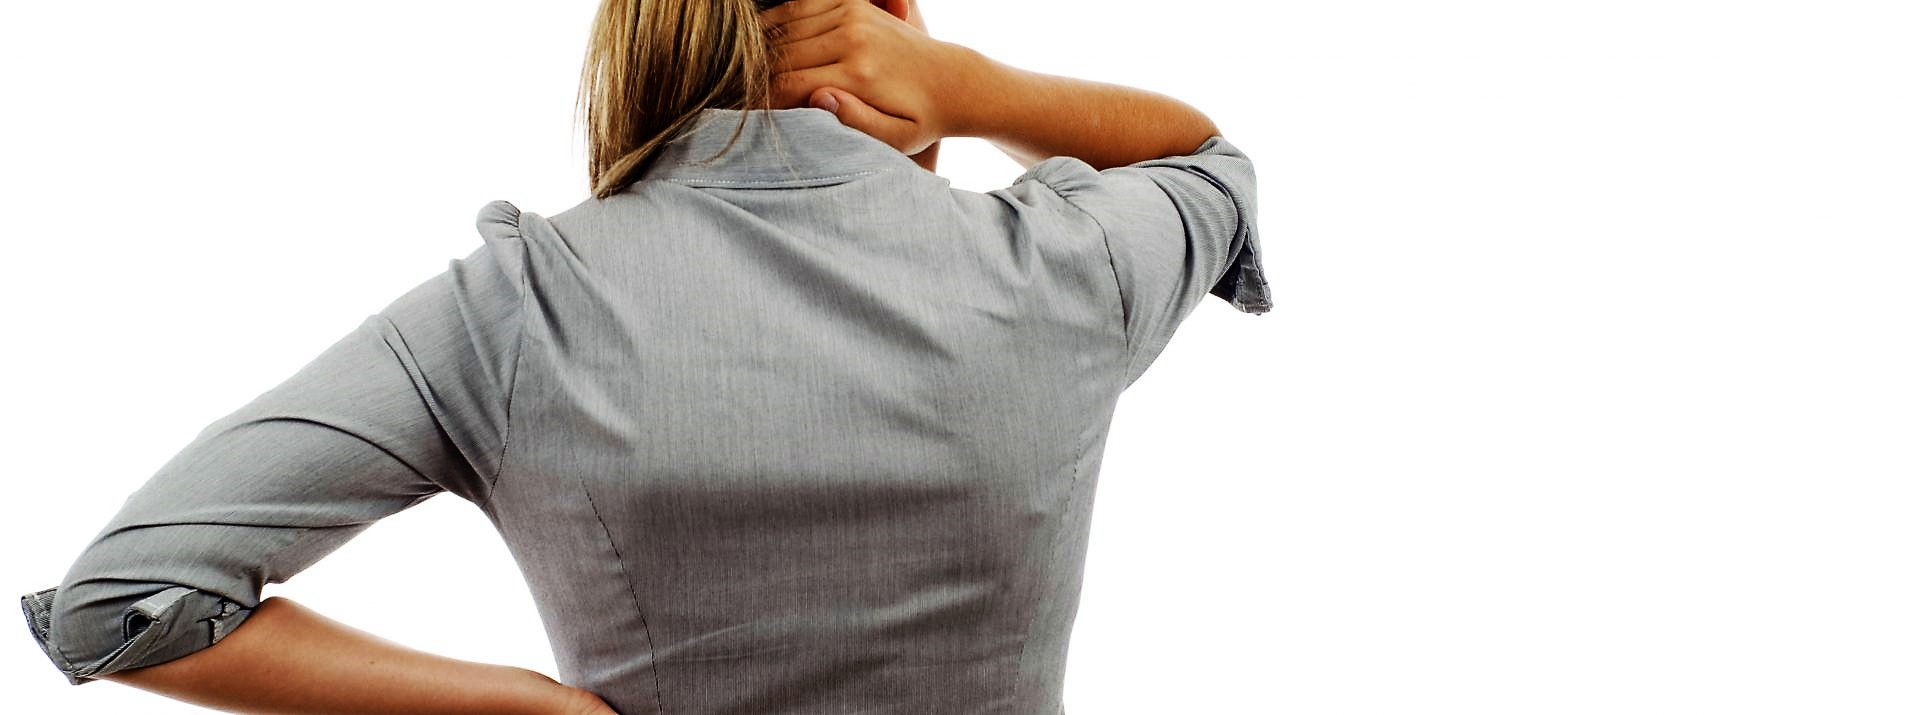 Auto Accident Injury and Whiplash Specialists